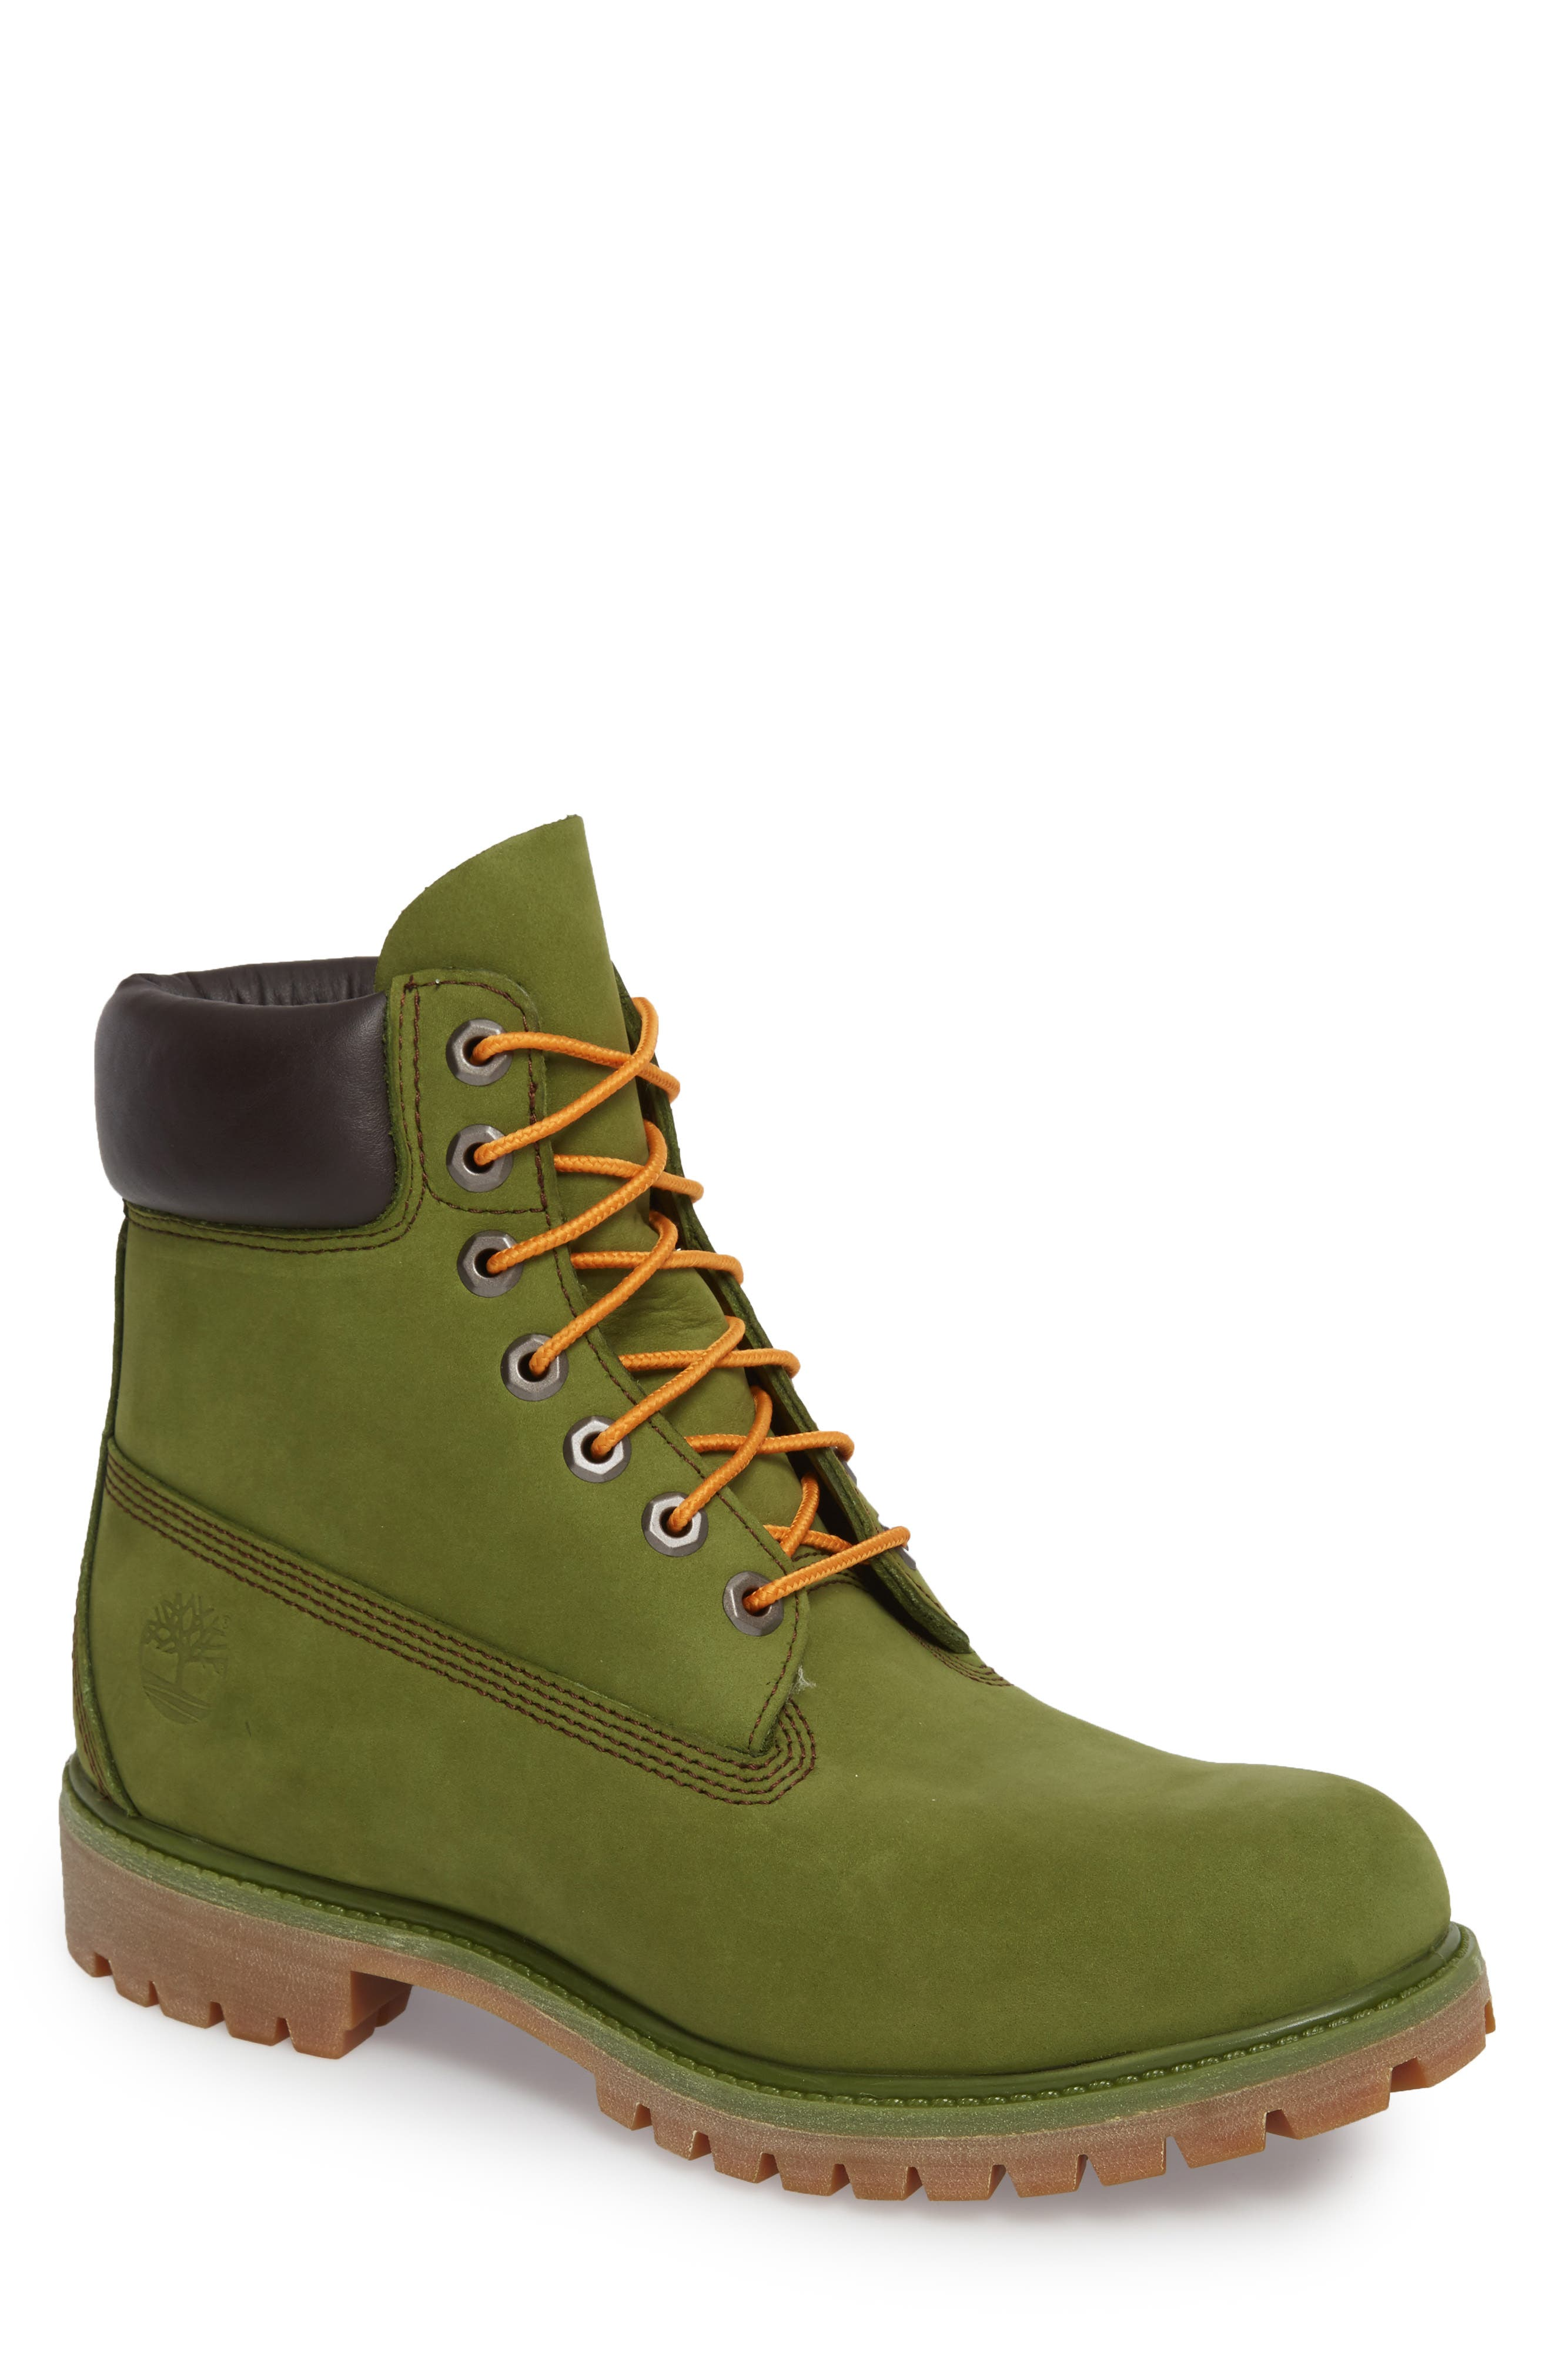 'Six Inch Classic Boots Series - Premium' Boot,                             Main thumbnail 1, color,                             Pesto Waterbuck